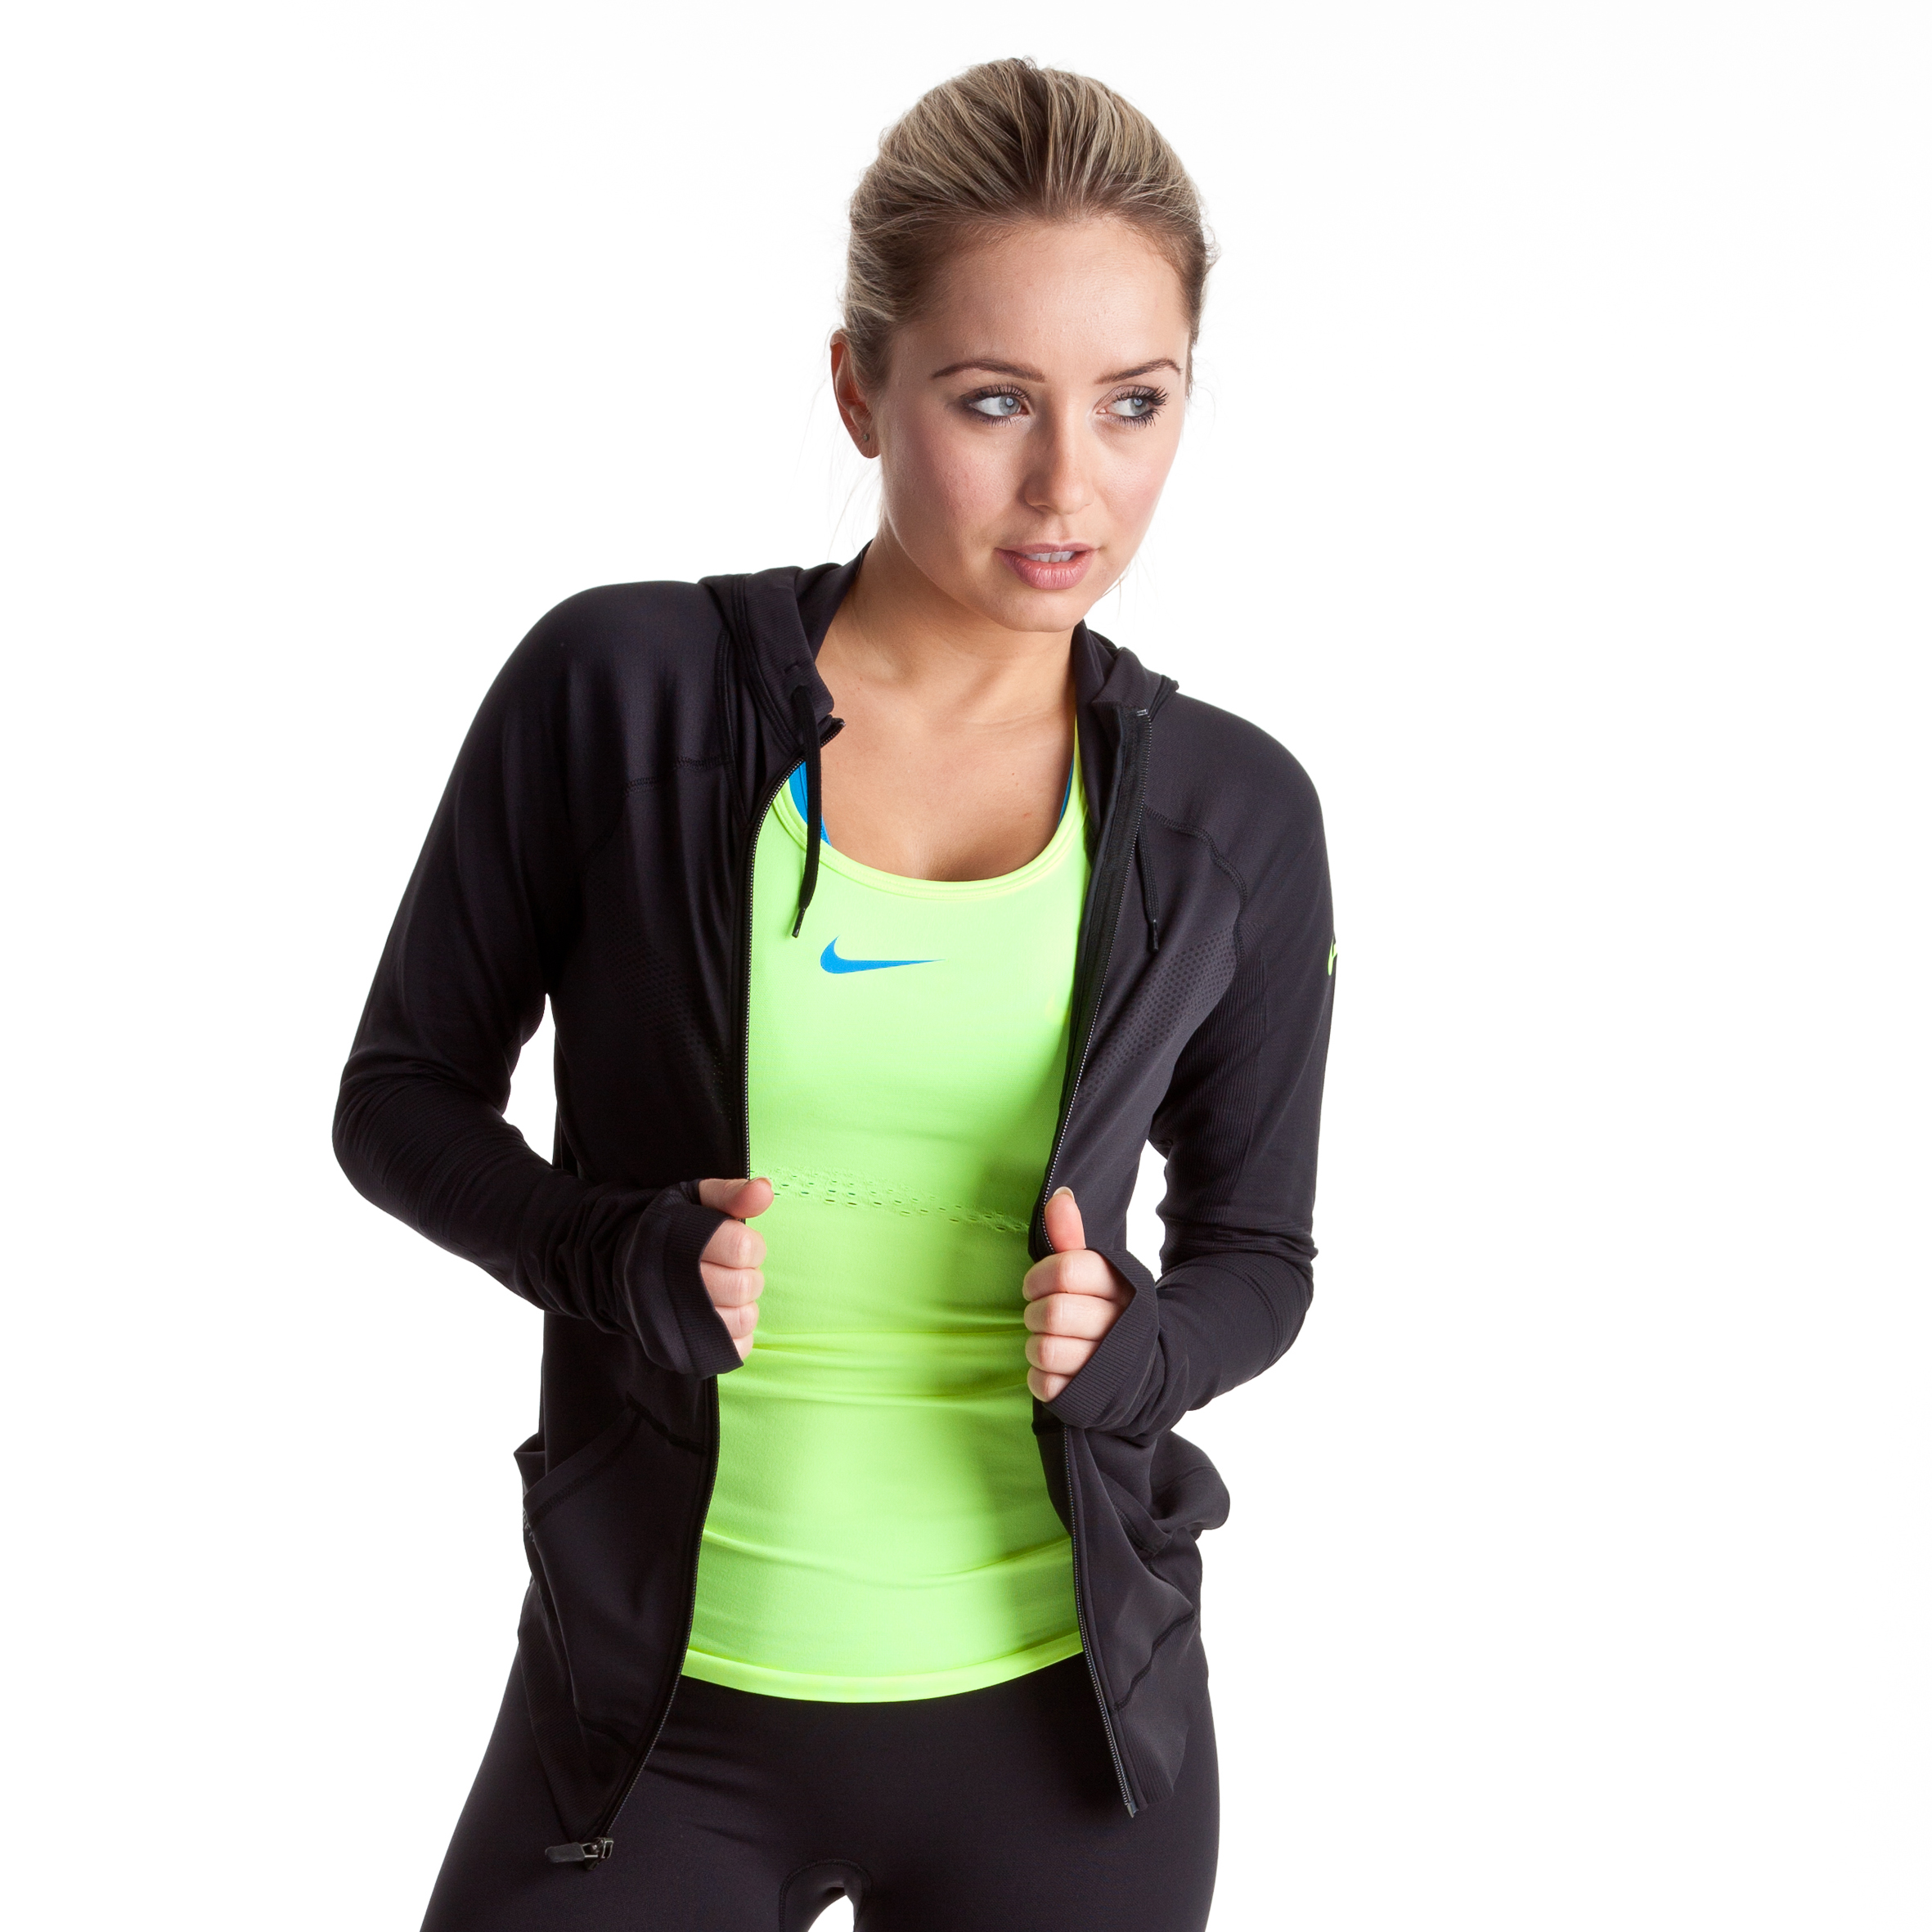 Nike Limitless Jacket - Black/Volt - Womens